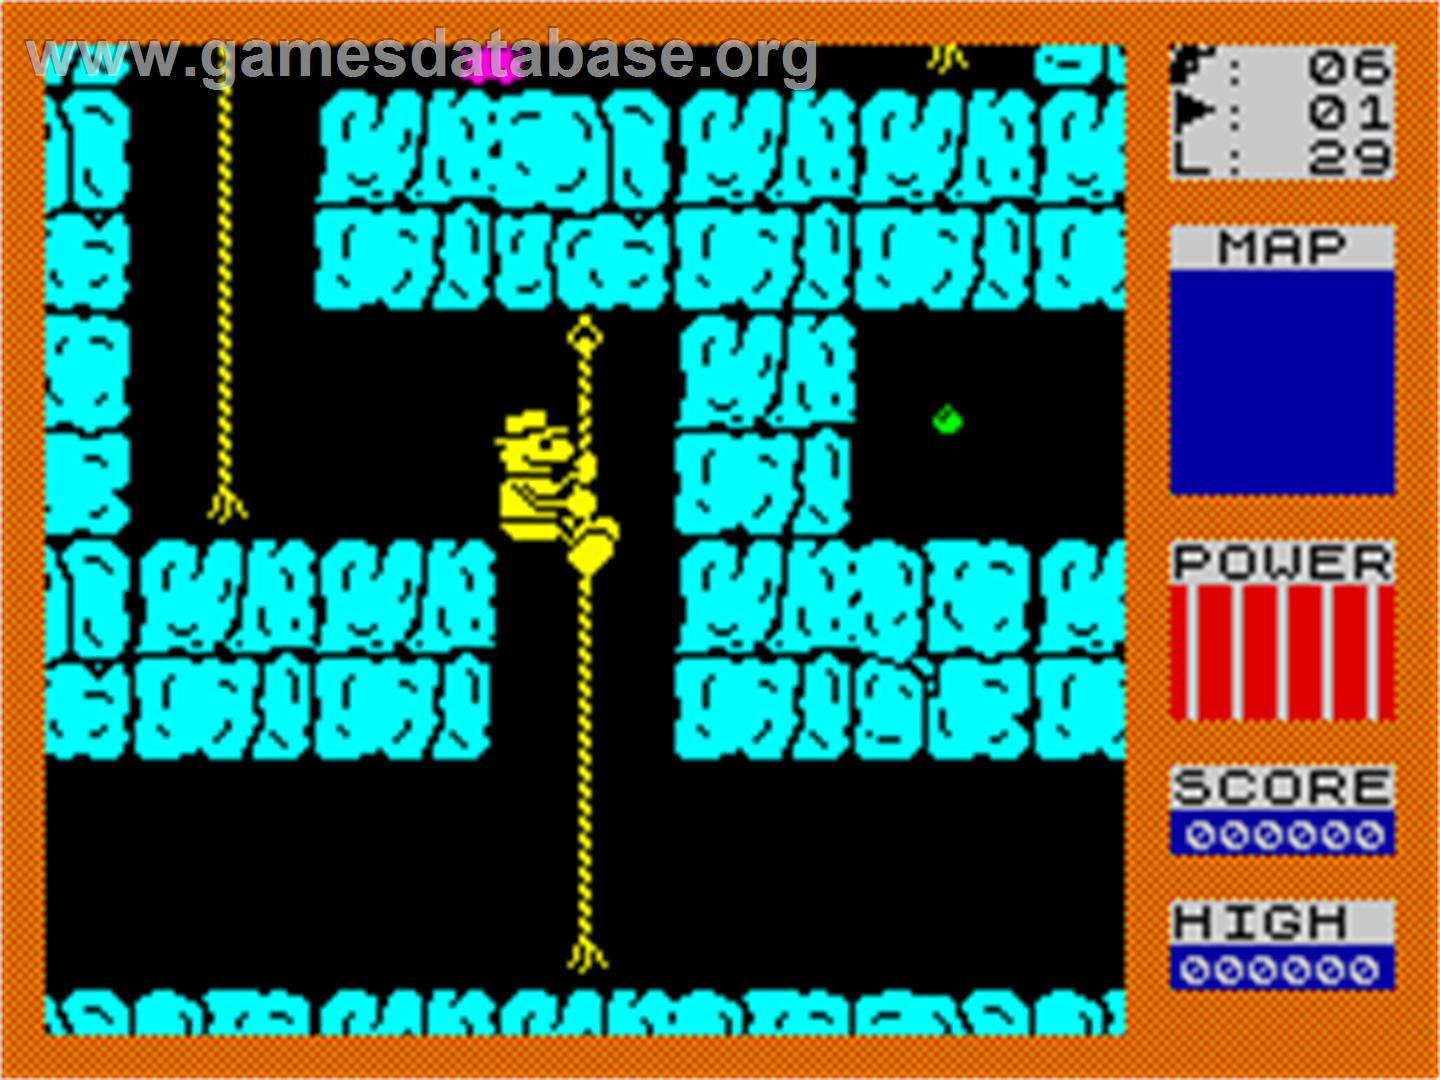 Fred - Sinclair ZX Spectrum - Artwork - In Game